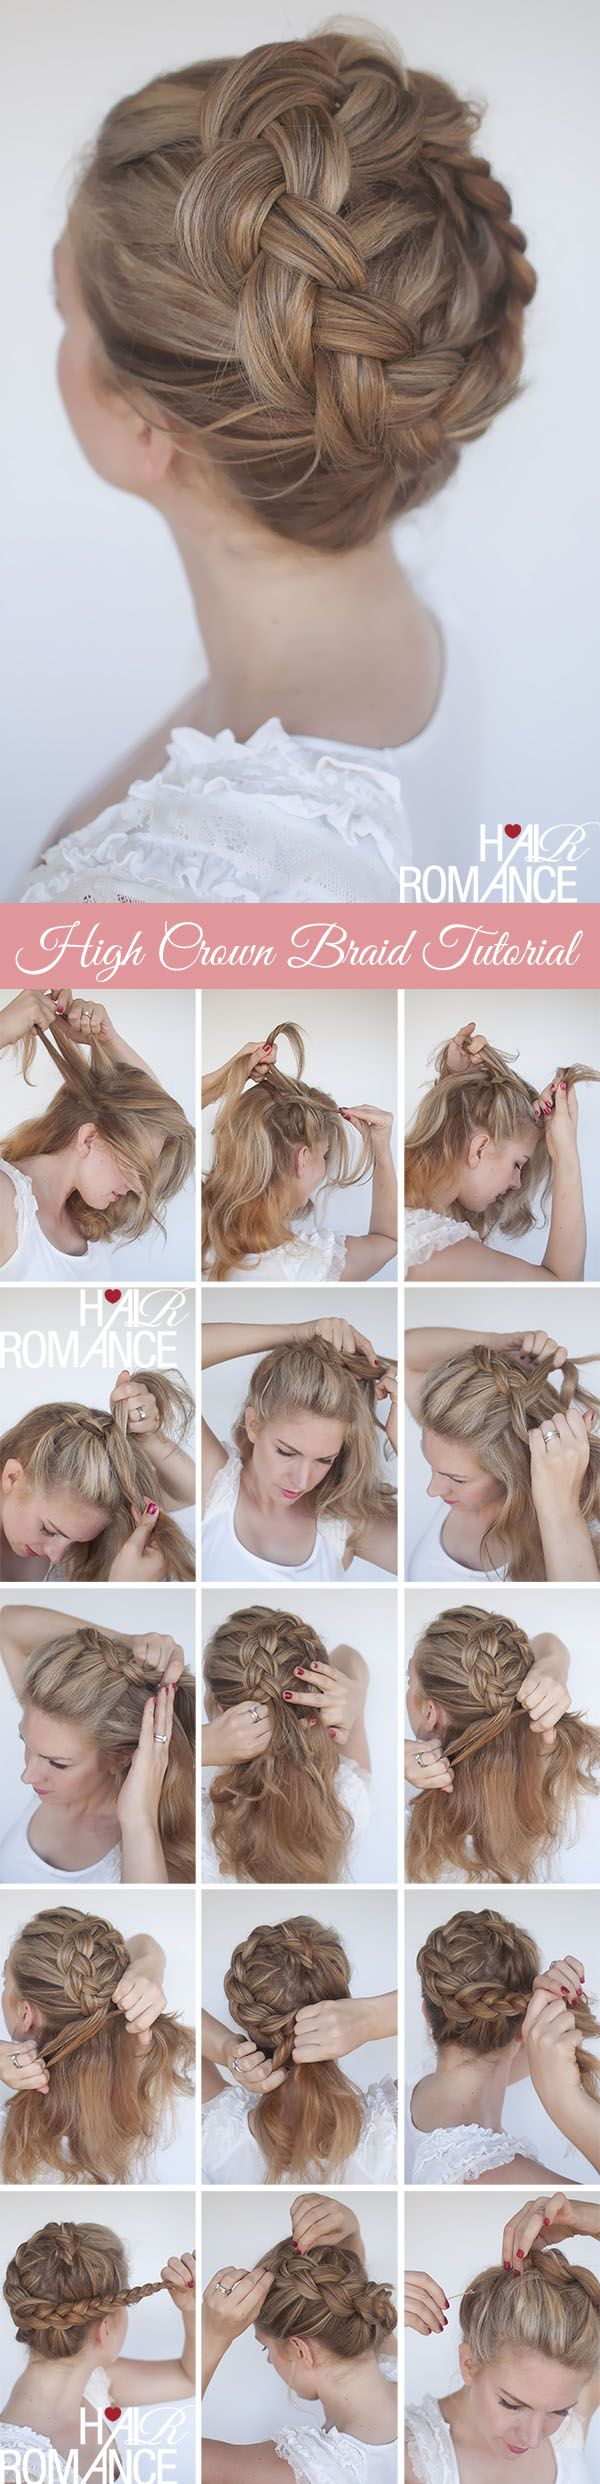 Here's a great tip from this style: To make your hair look thicker, stretch th...